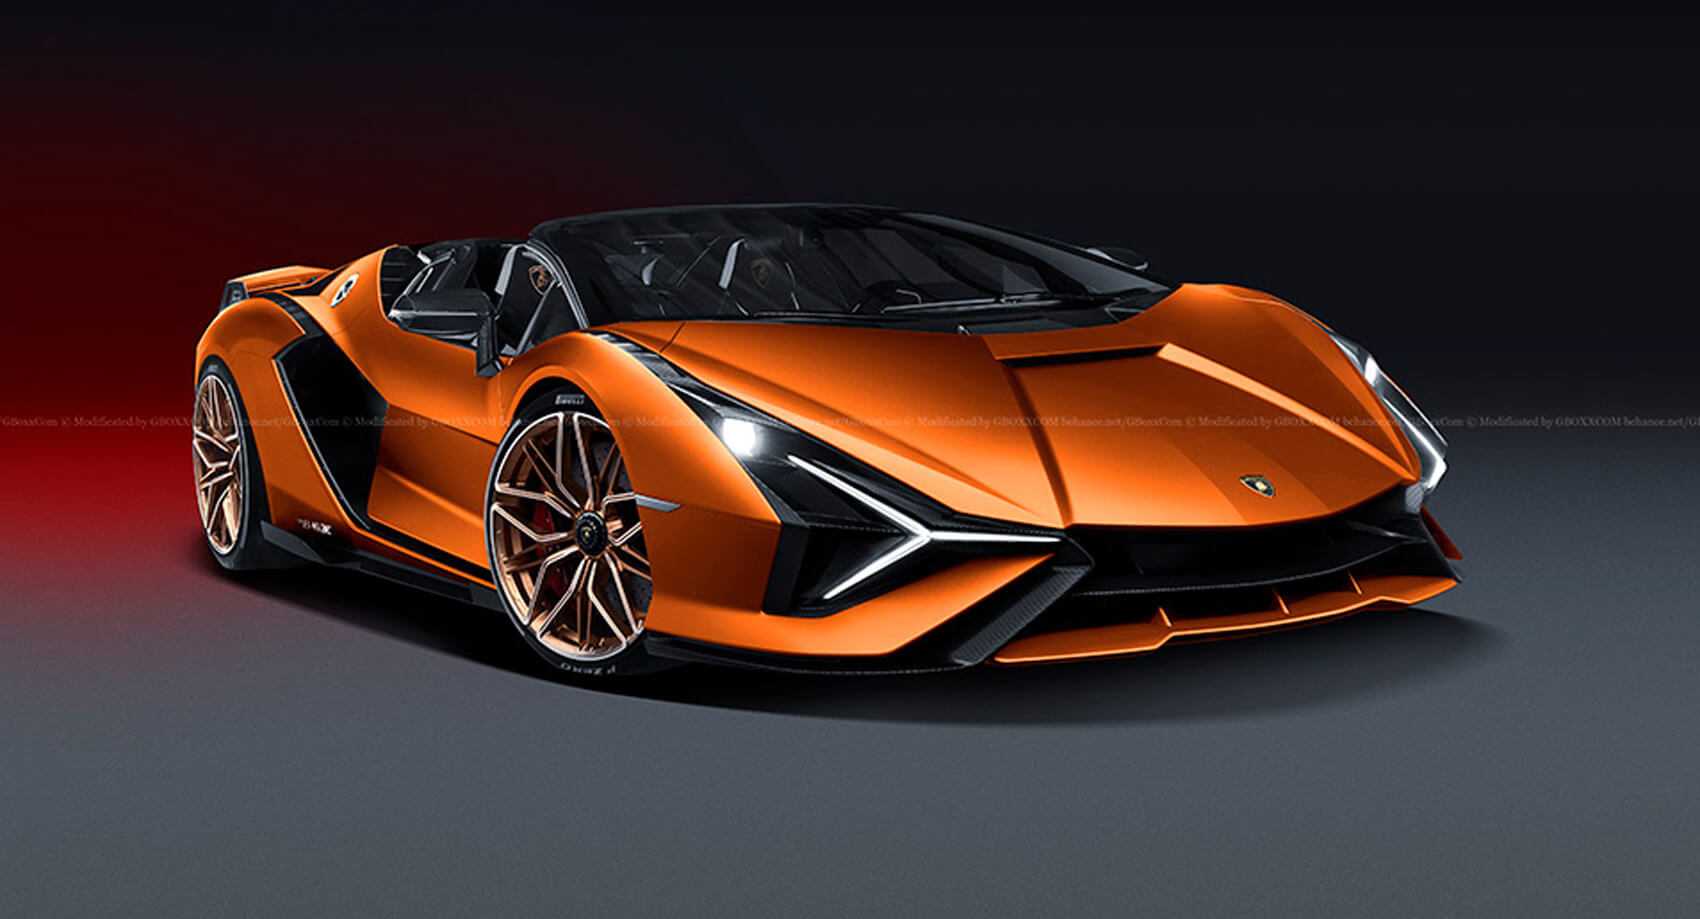 Lamborghini Sian Fkp 37 Spyder Reportedly In The Works